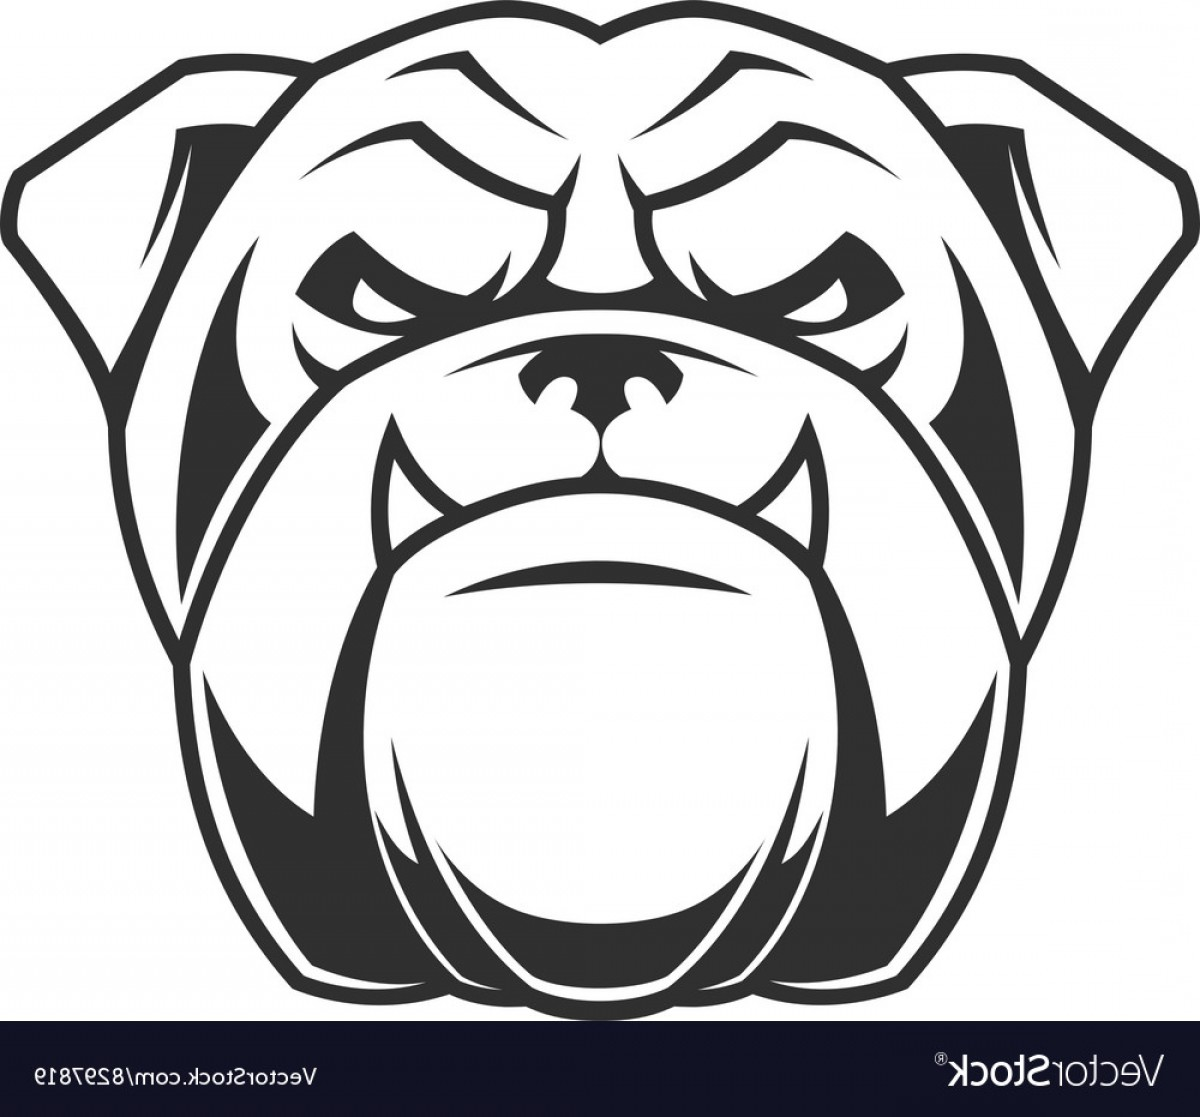 Bulldog Vector Art: The Head Of A Fierce Bulldog Vector